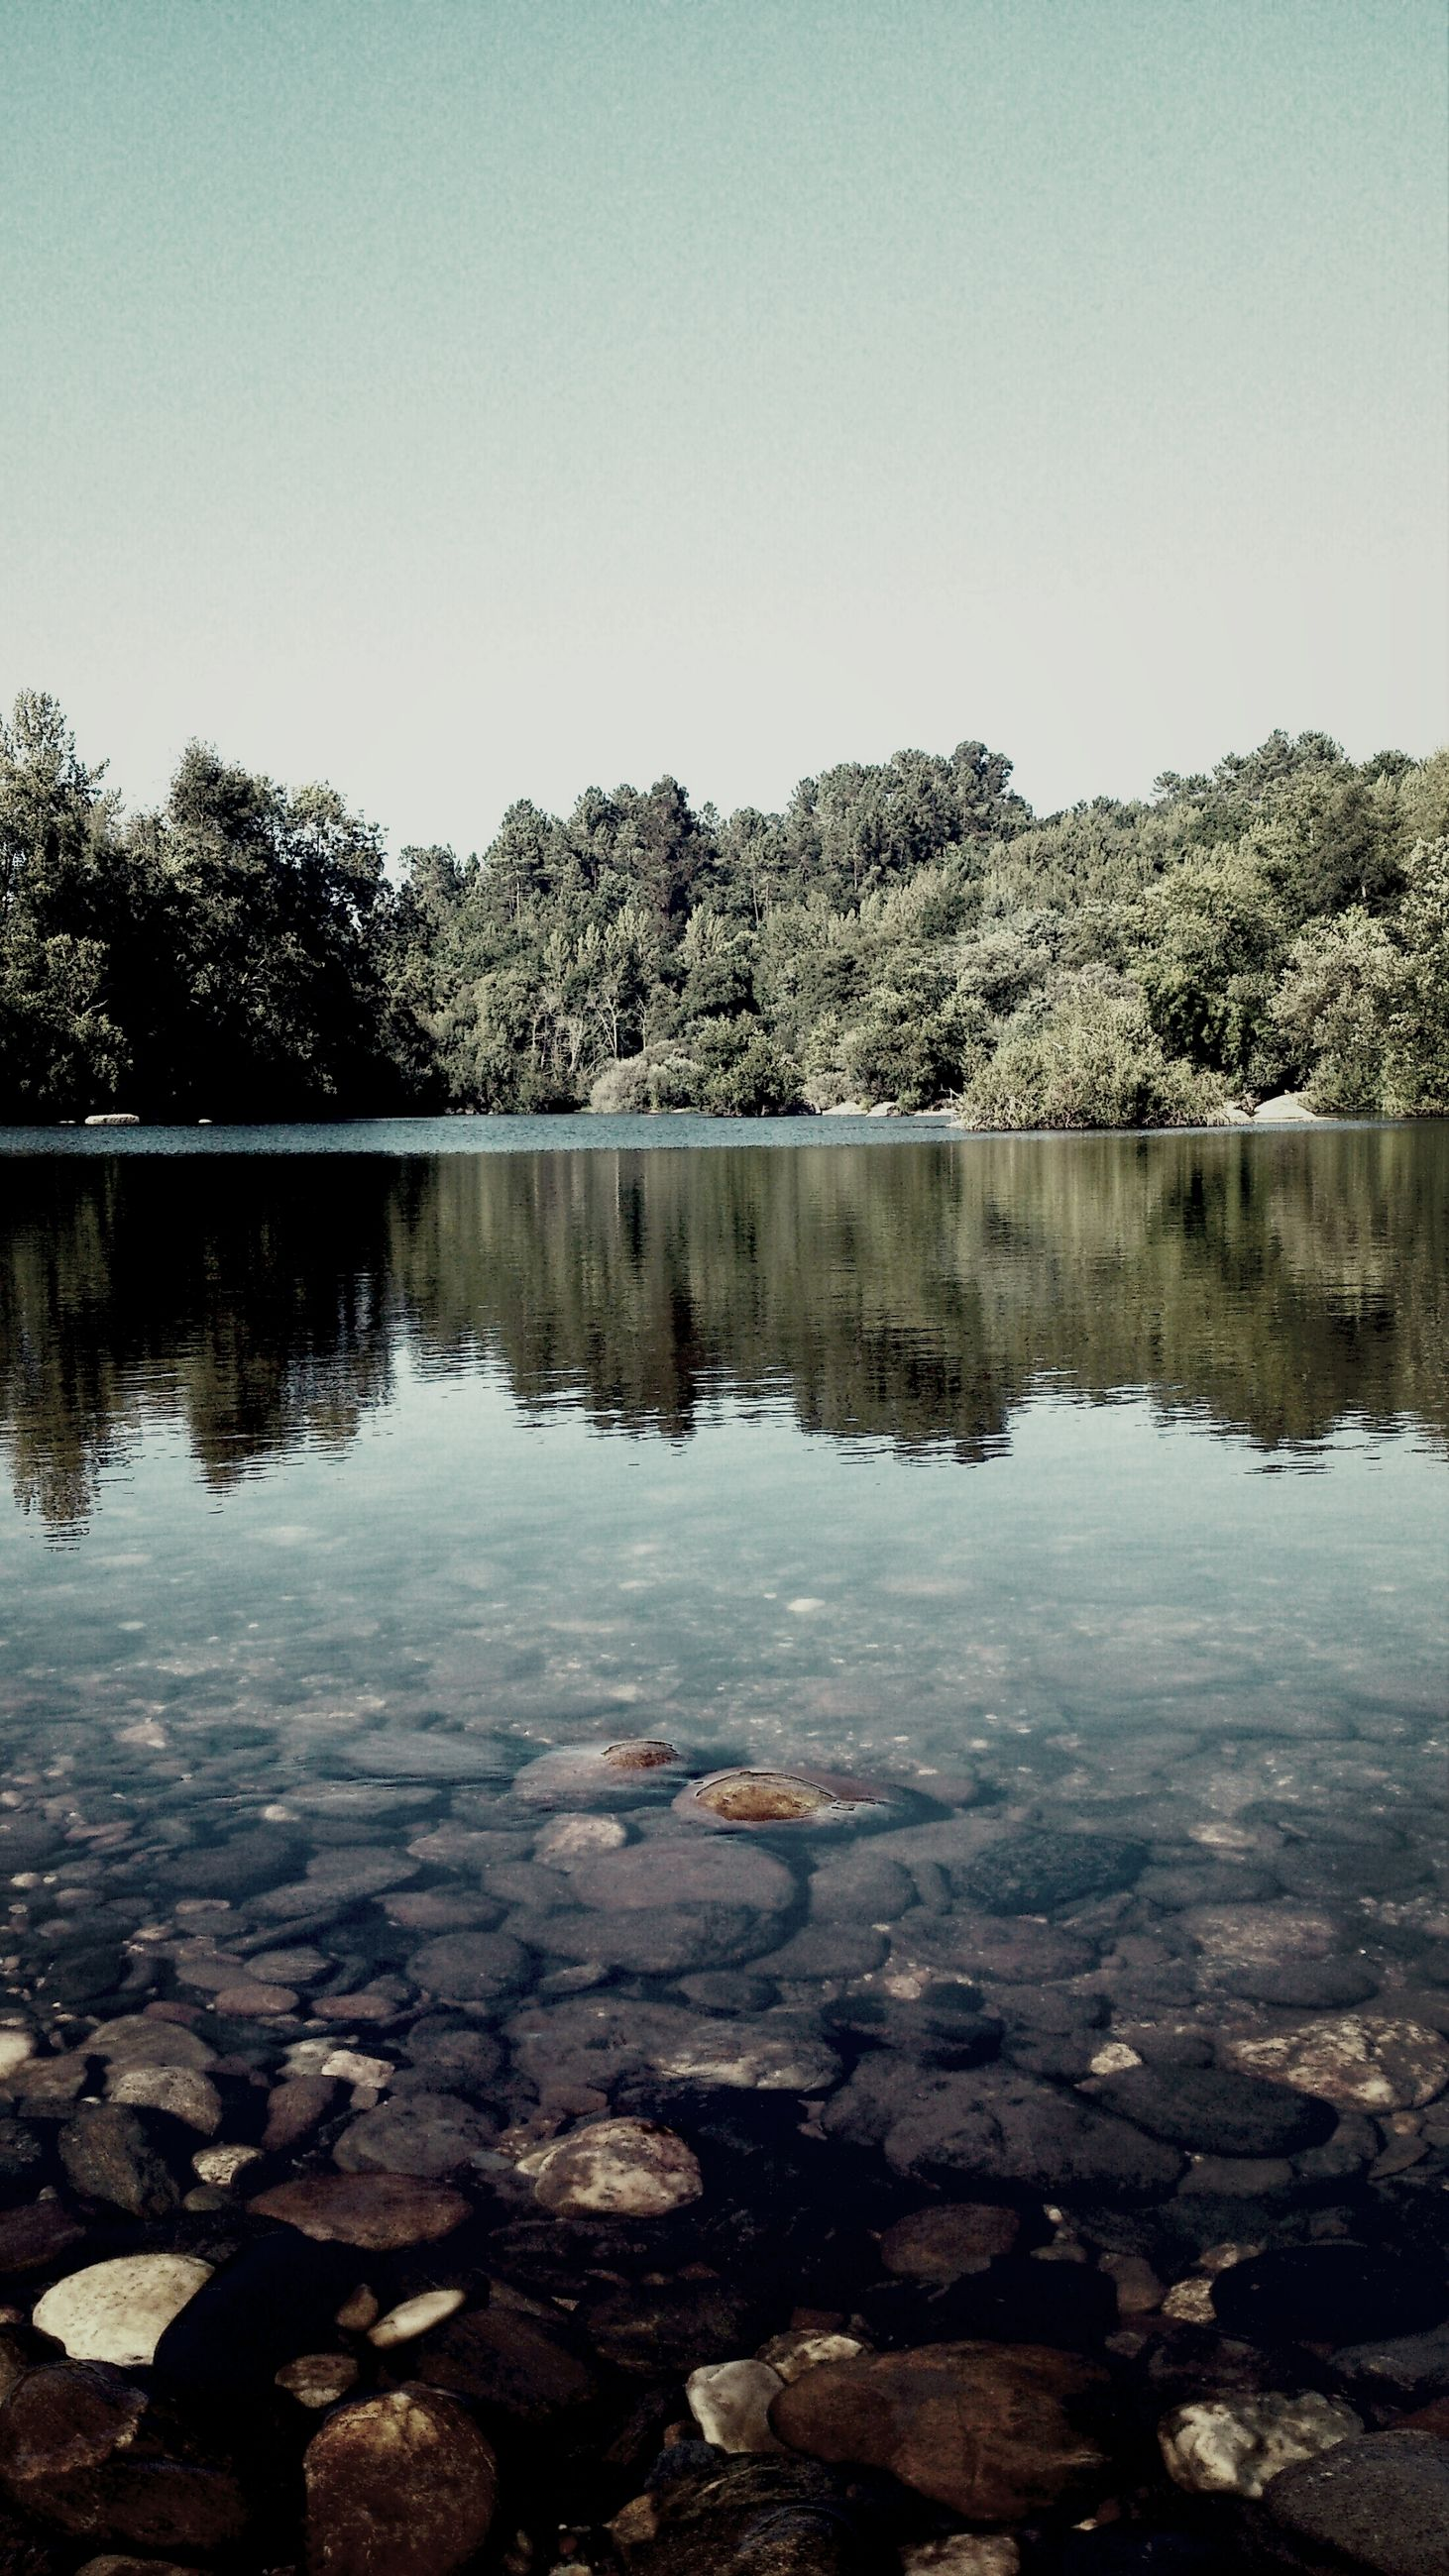 water, clear sky, reflection, lake, rock - object, tranquility, tranquil scene, copy space, scenics, beauty in nature, nature, stone - object, river, sky, tree, outdoors, blue, day, standing water, no people